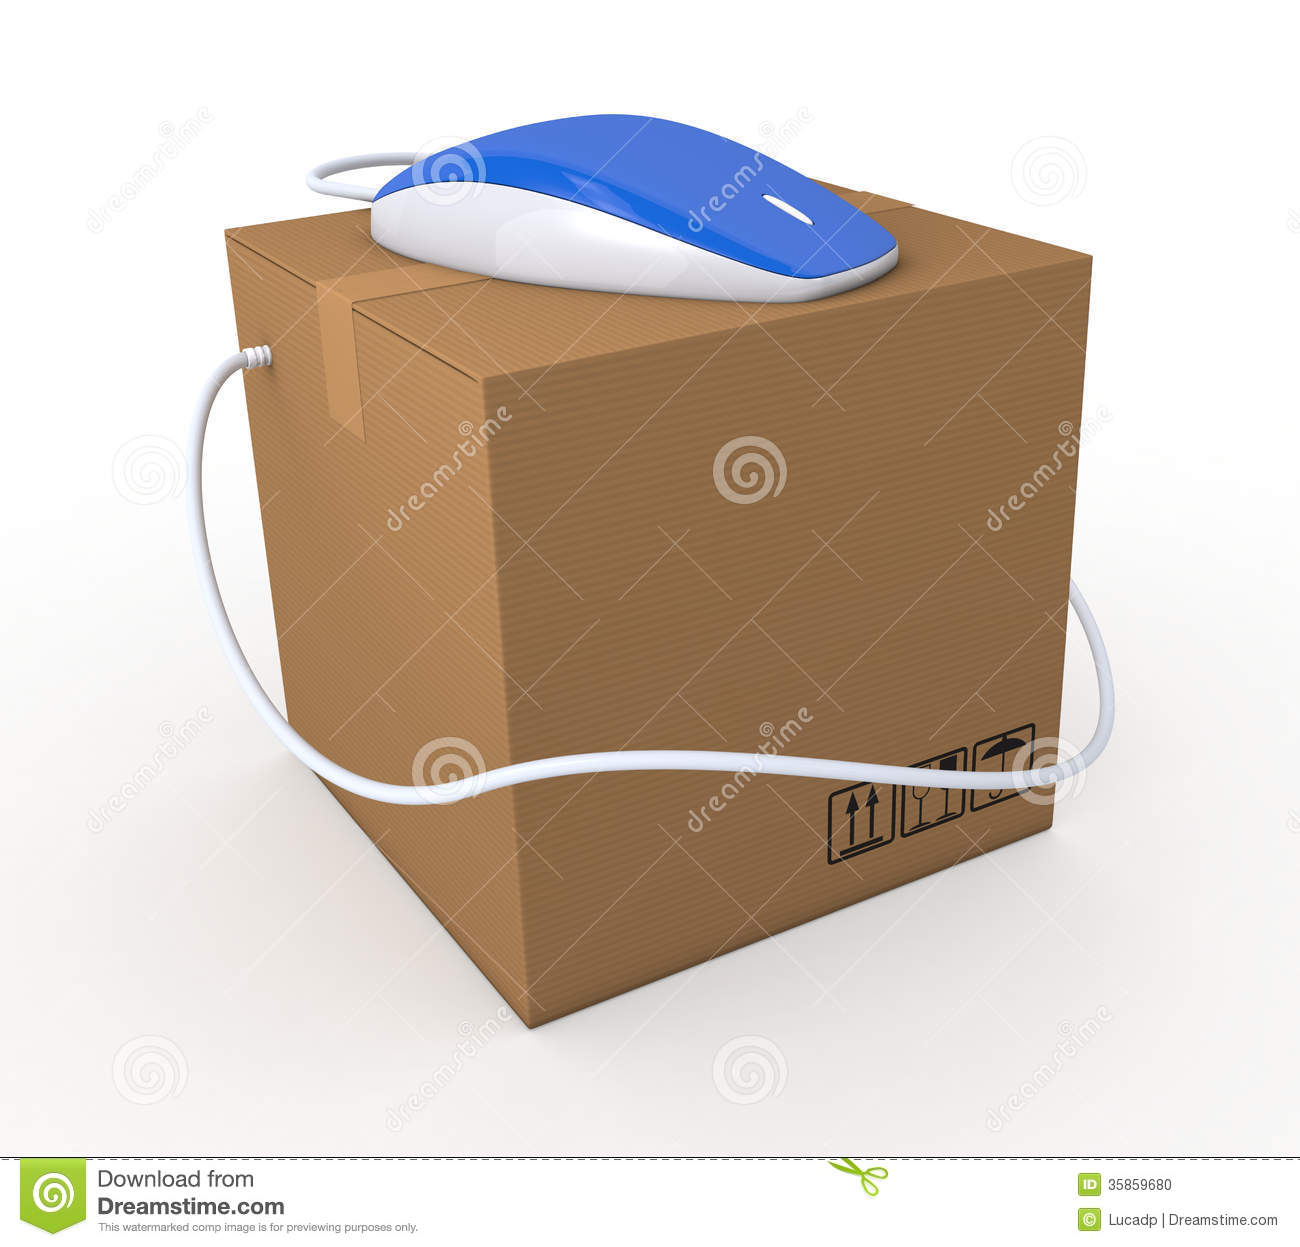 Box online shopping